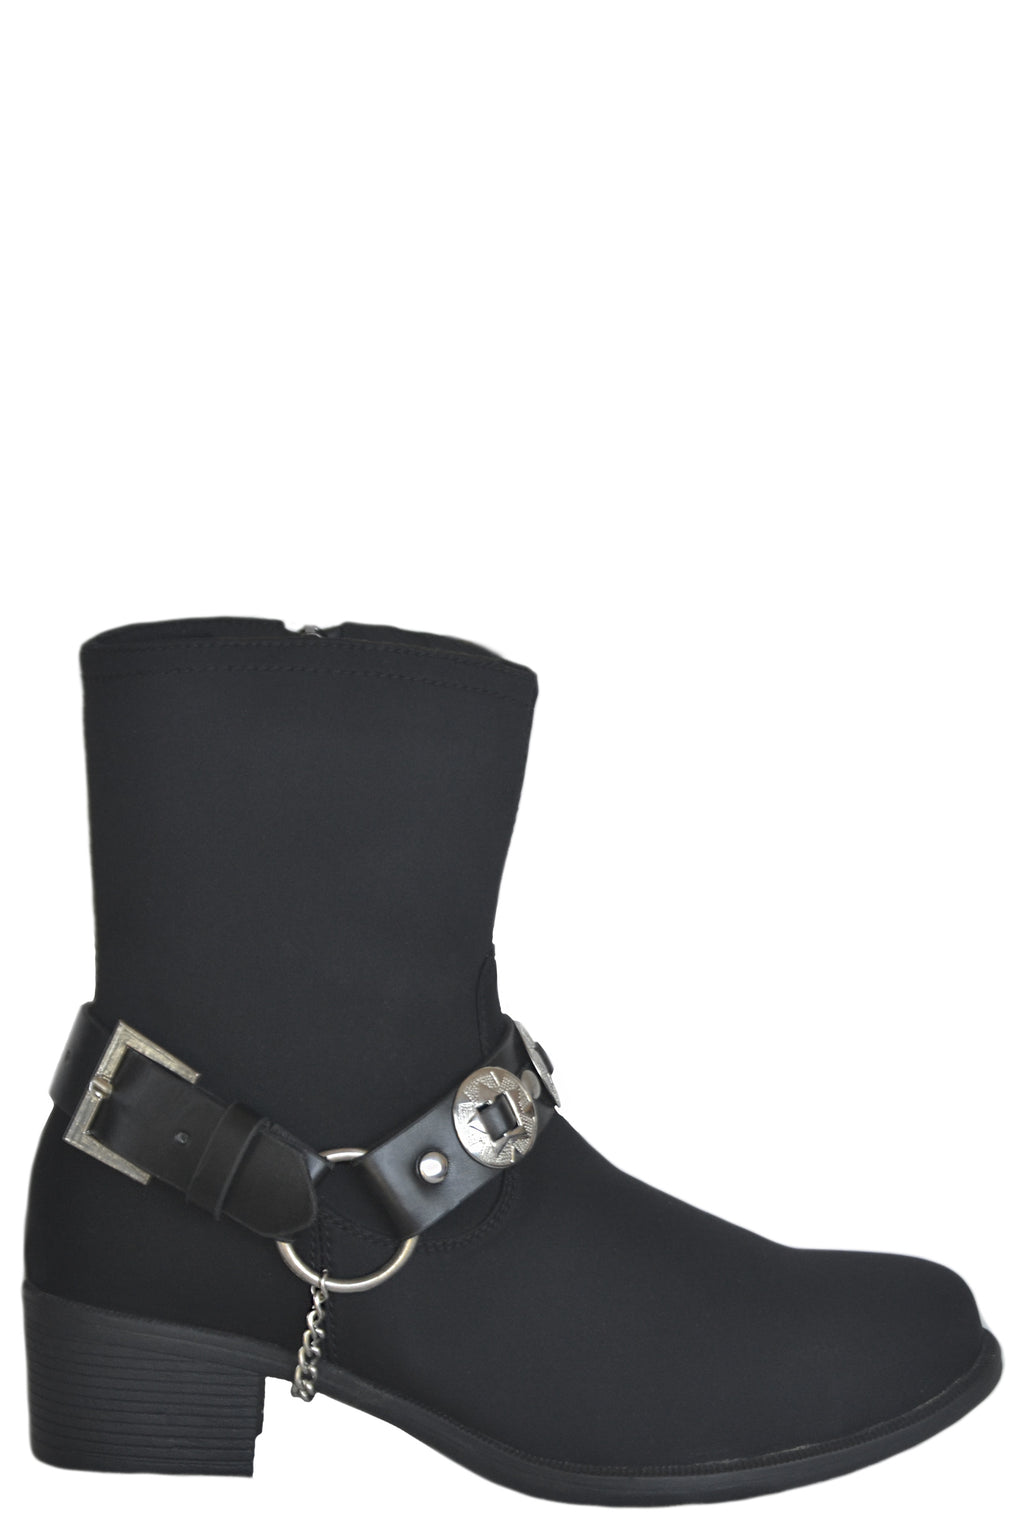 MANHATTAN BREATHABLE WATERPROOF MID-HEIGHT NYLON BOOT WITH CONCHO BELT